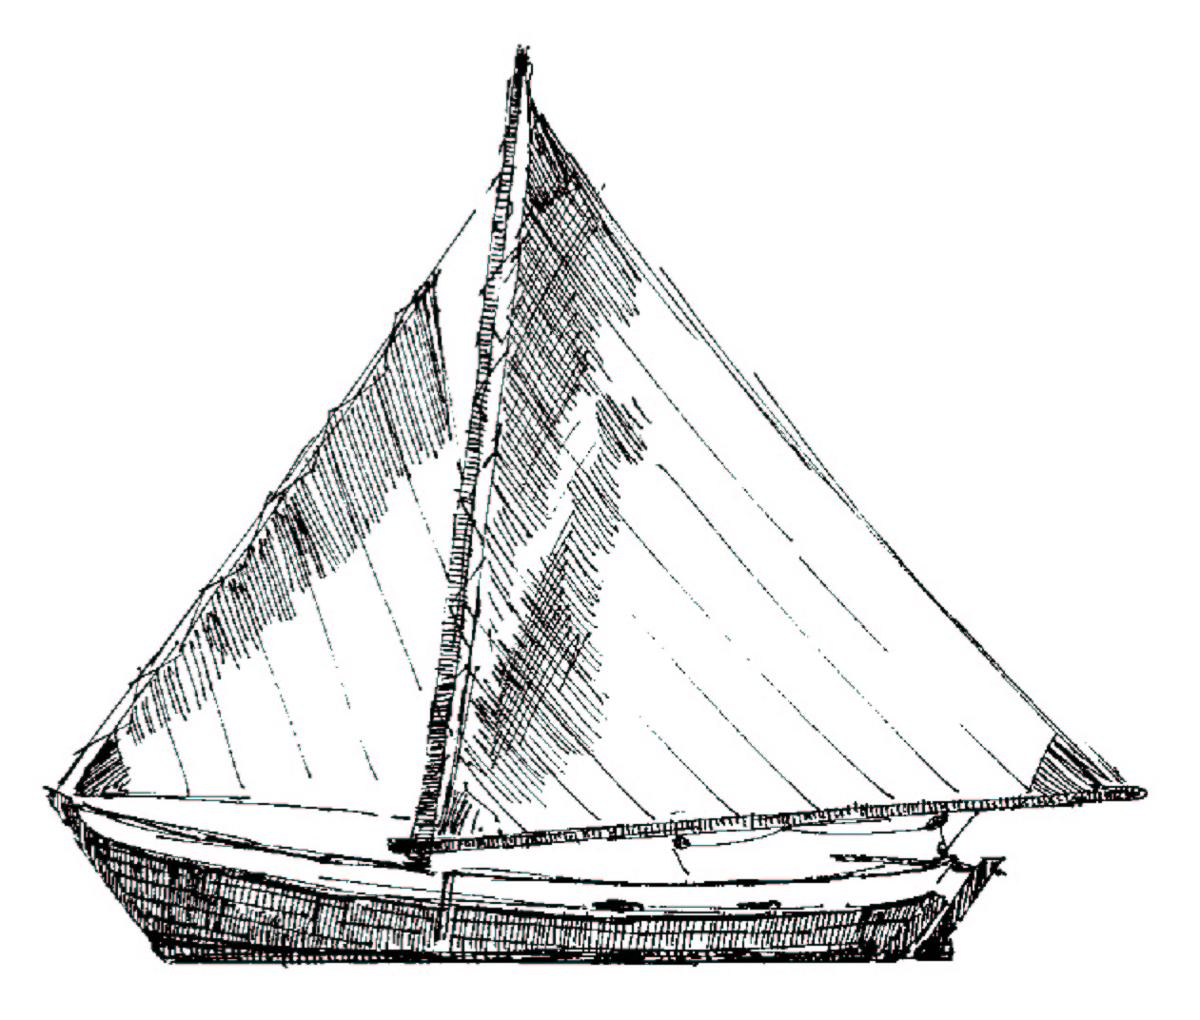 Sail Boat Drawing at GetDrawings.com | Free for personal use Sail Boat Drawing of your choice